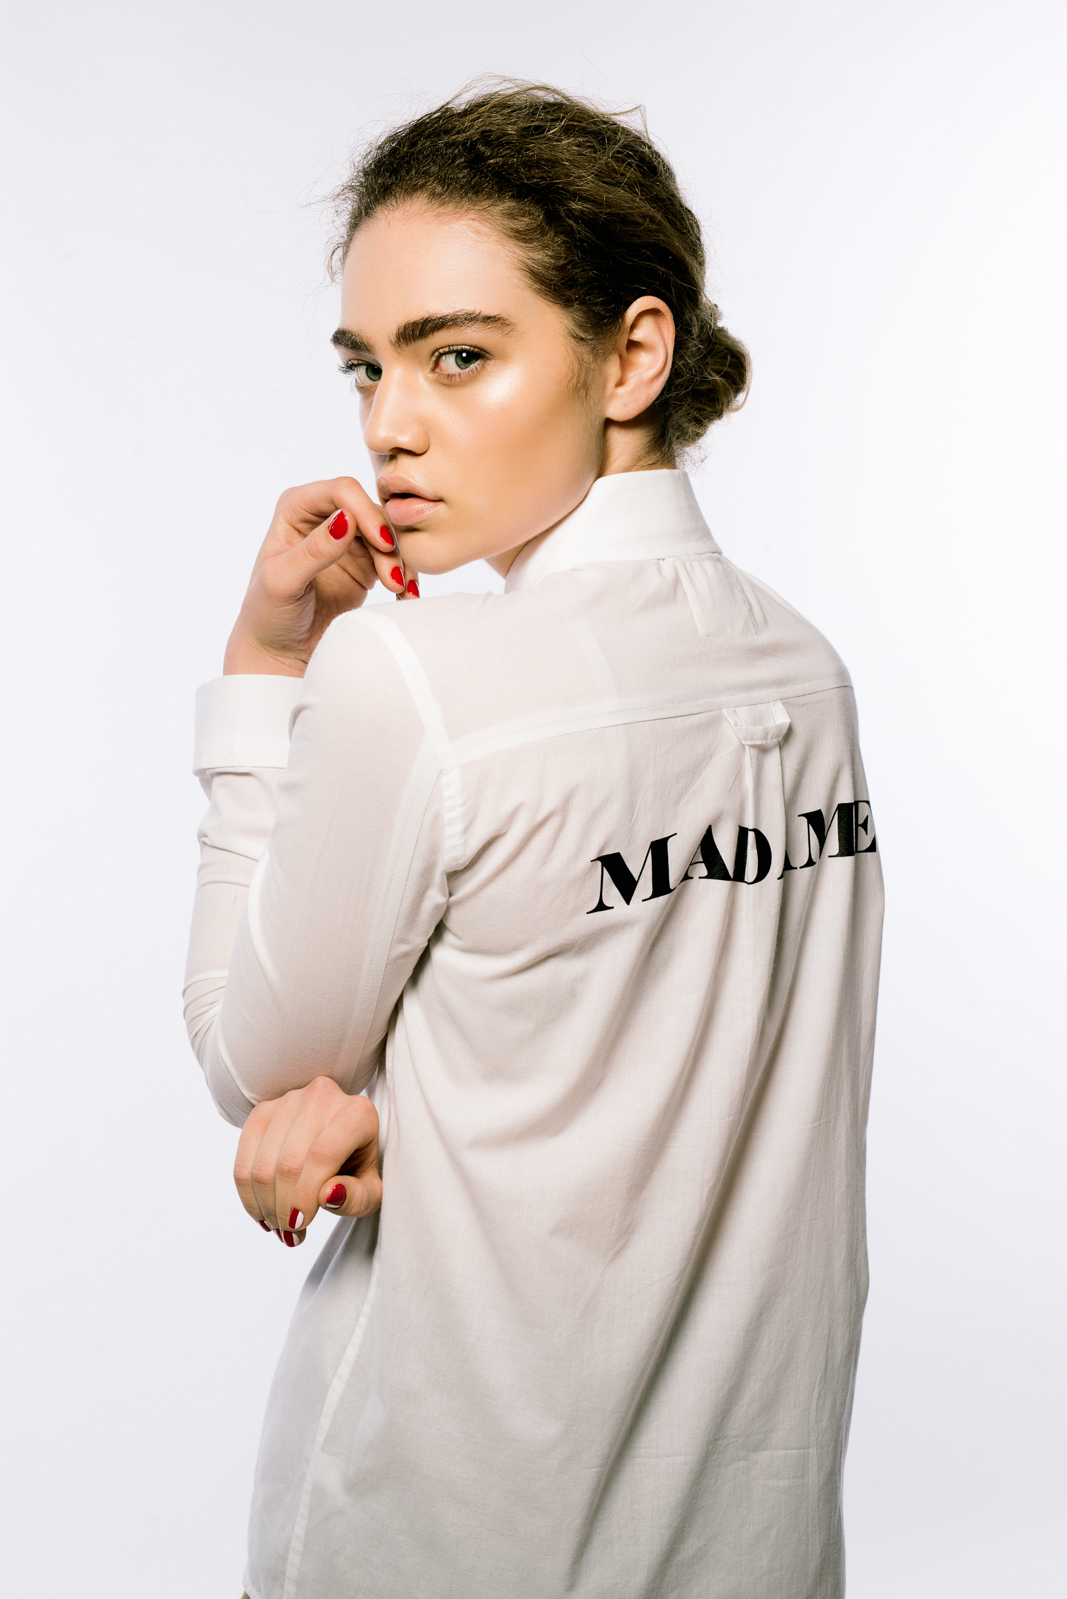 On model: Sir & Madame 'Madame' Button Up Shirt in white